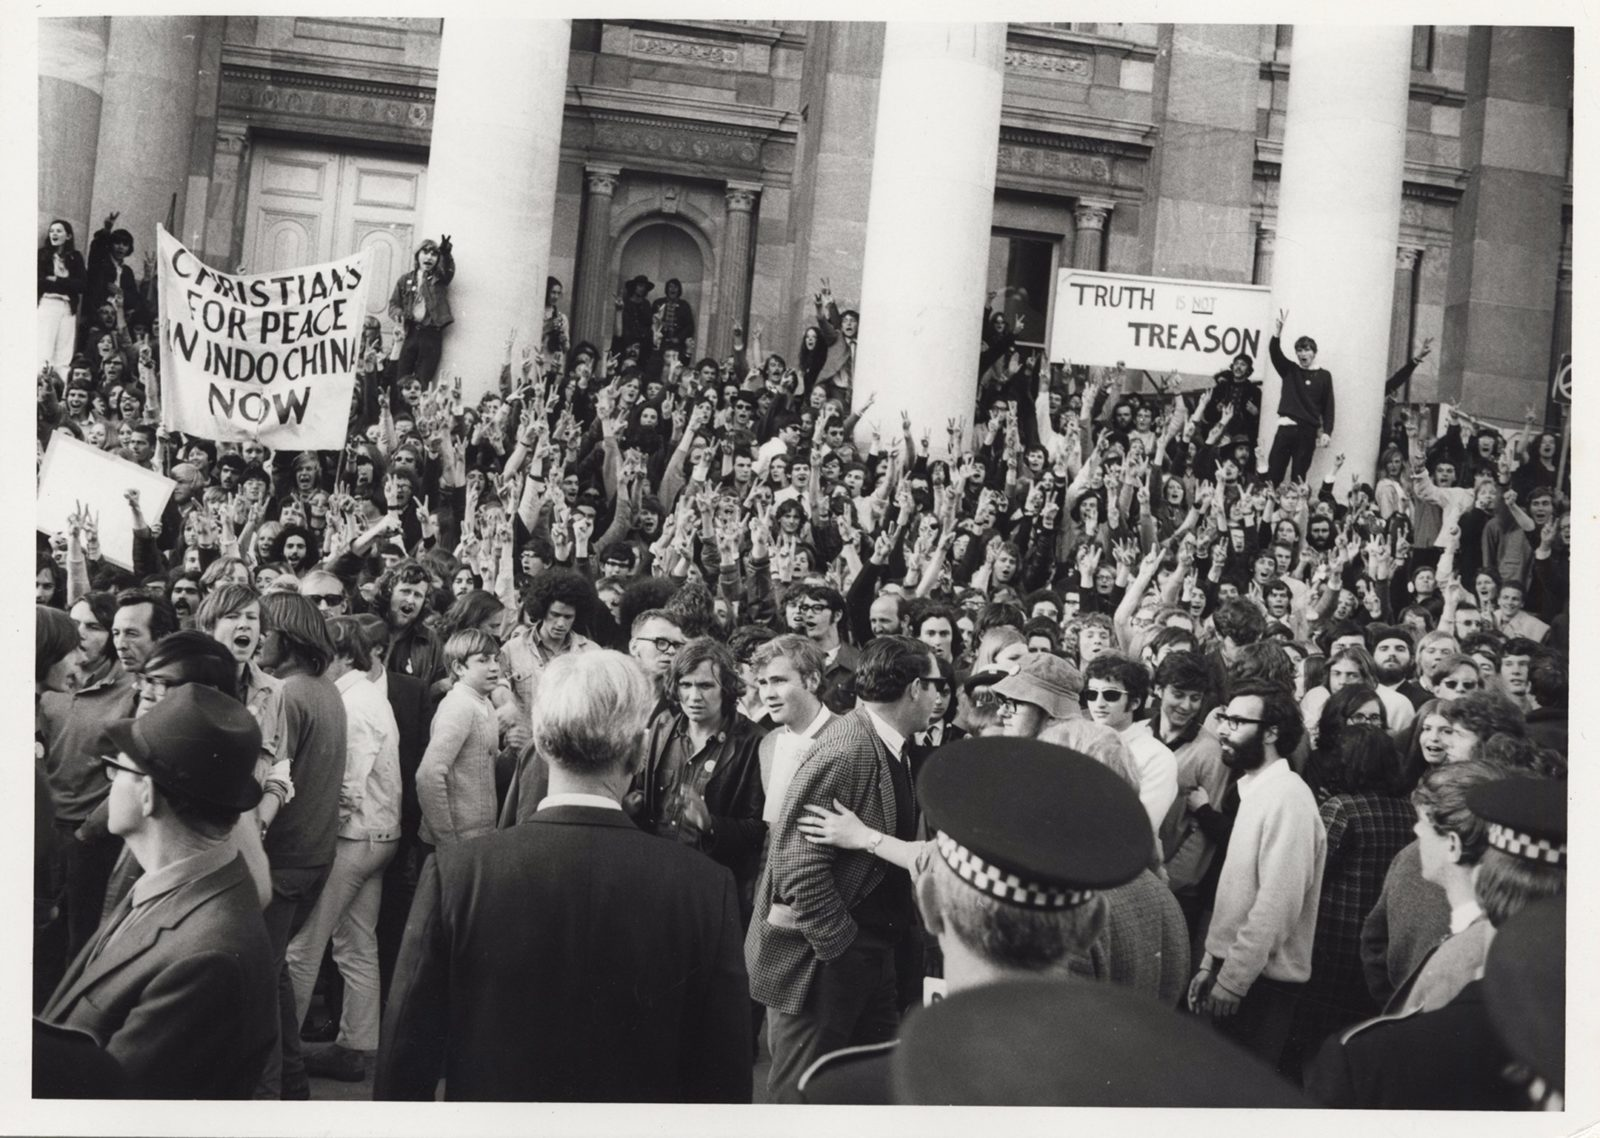 A crowd of people holding protest signs on the steps of a big building with columns